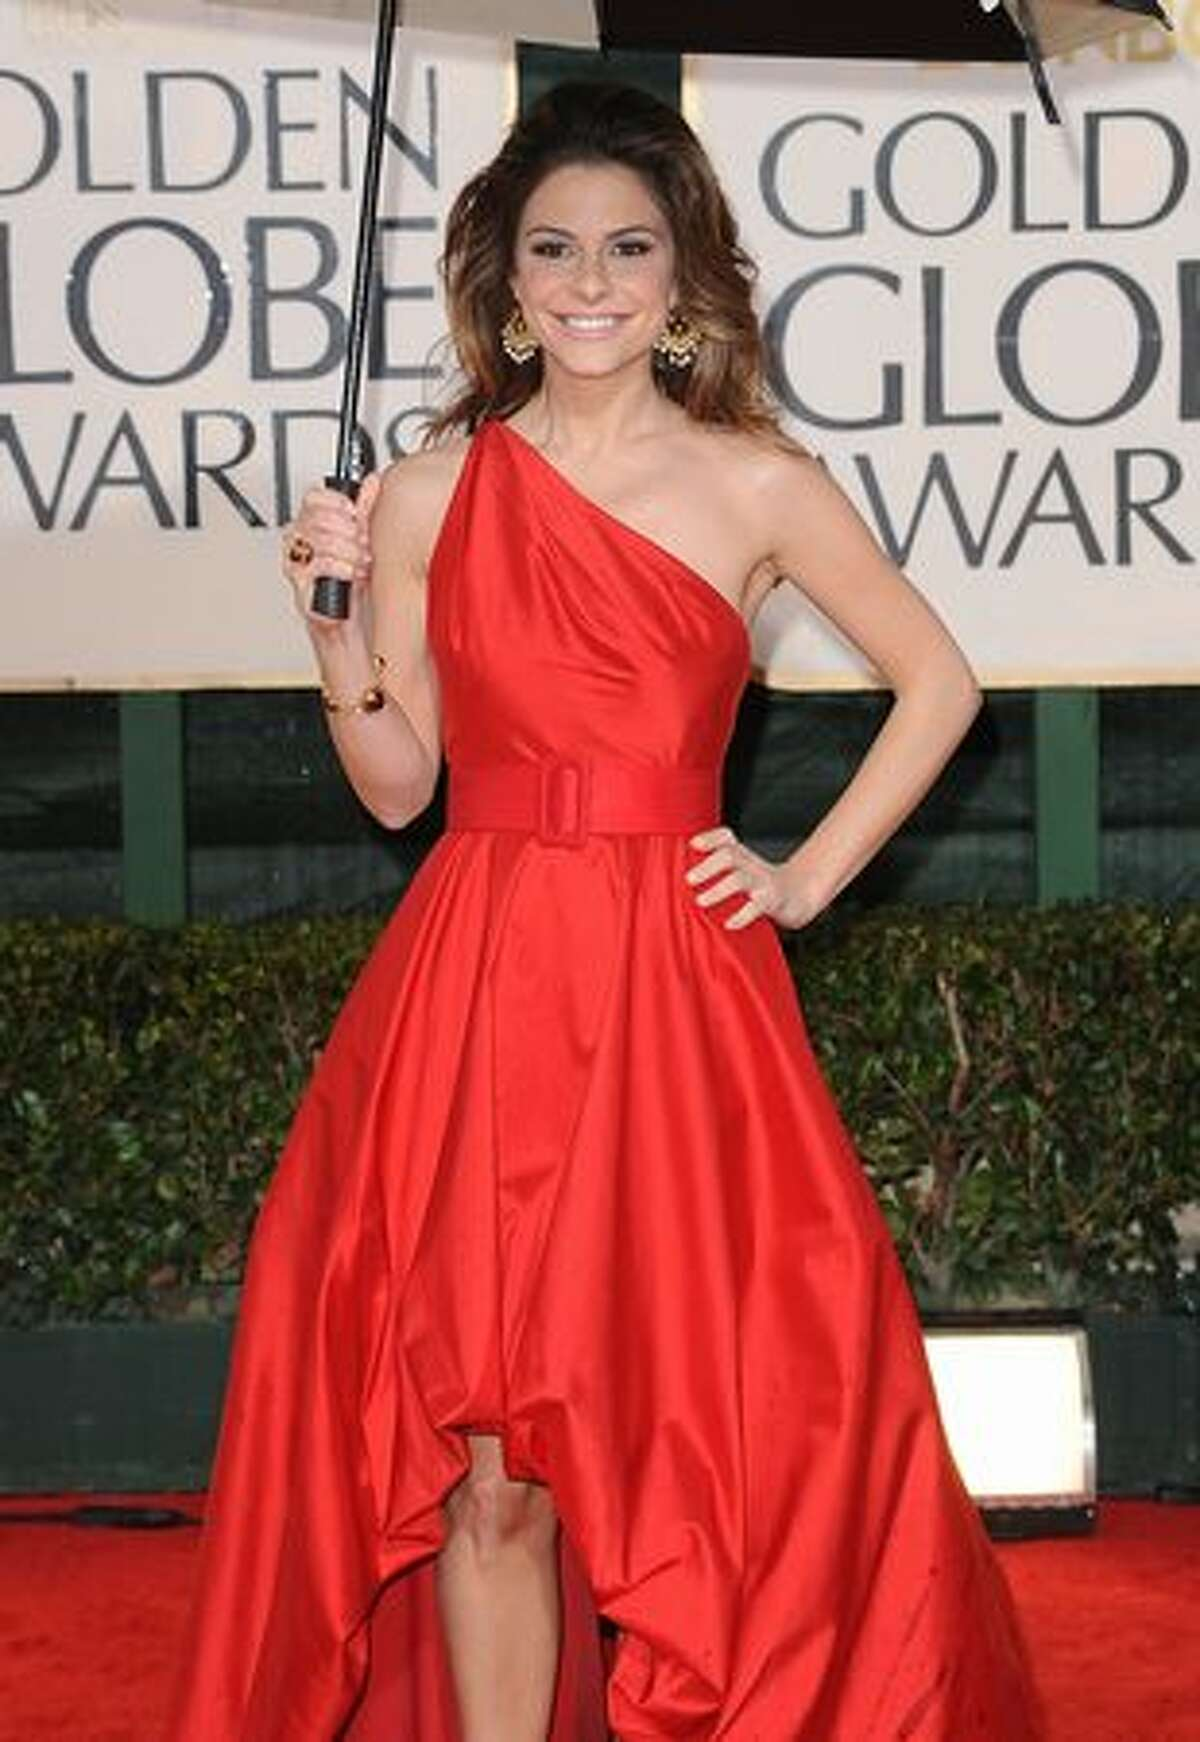 TV personality Maria Menounos arrives at the 67th Annual Golden Globe Awards held at The Beverly Hilton Hotel in Beverly Hills, California.